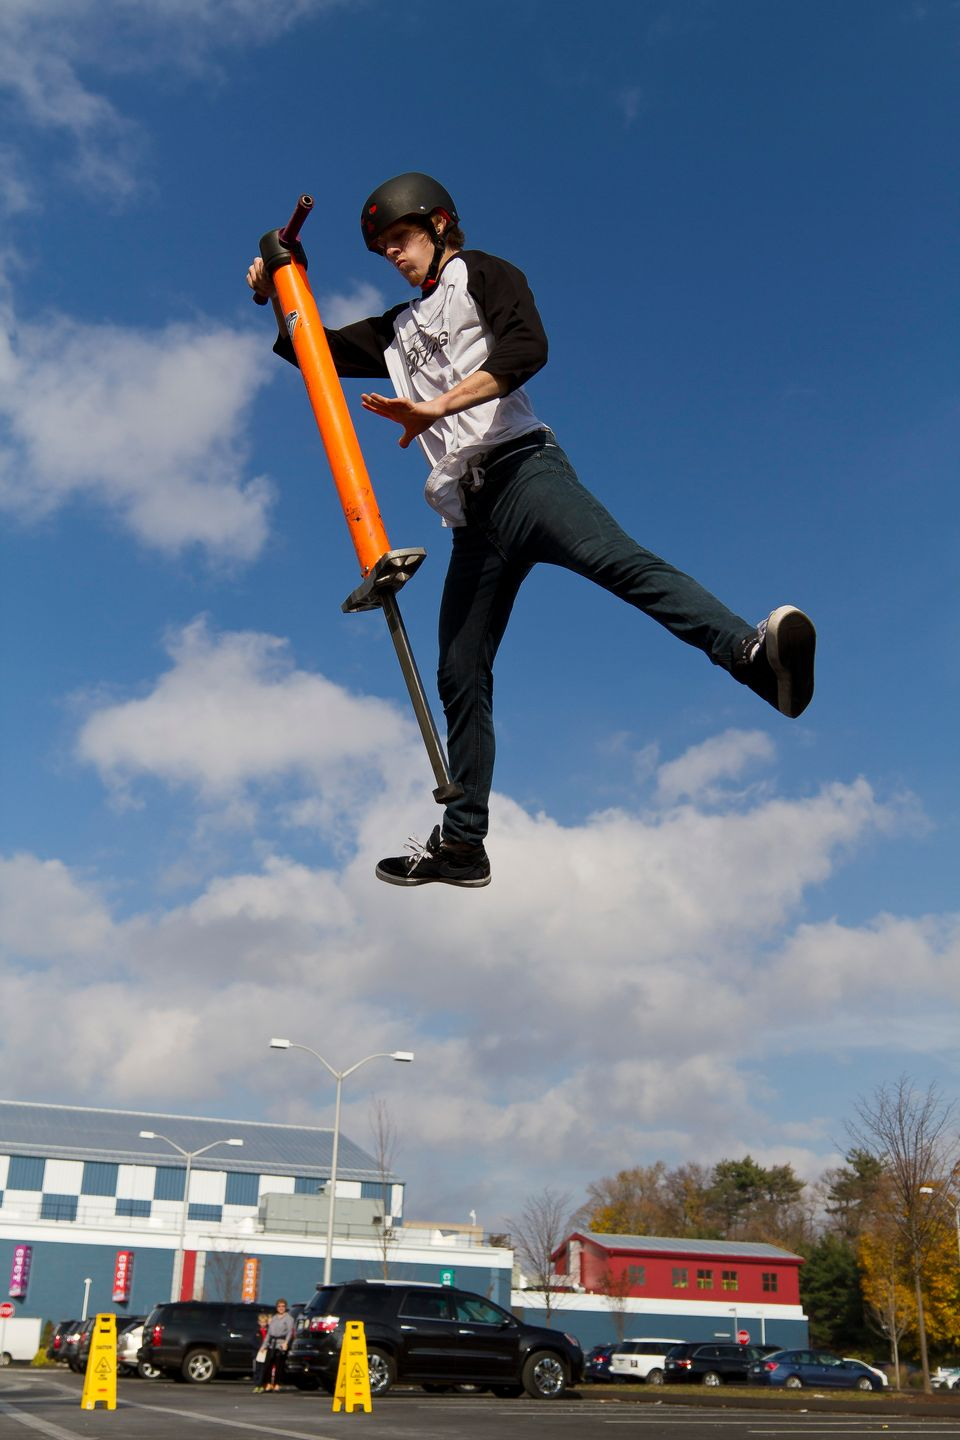 In honor of Guinness World Records Day, Tone Staubs jumped 265 times to break his own record of 257 for the Most Pogo Stick J